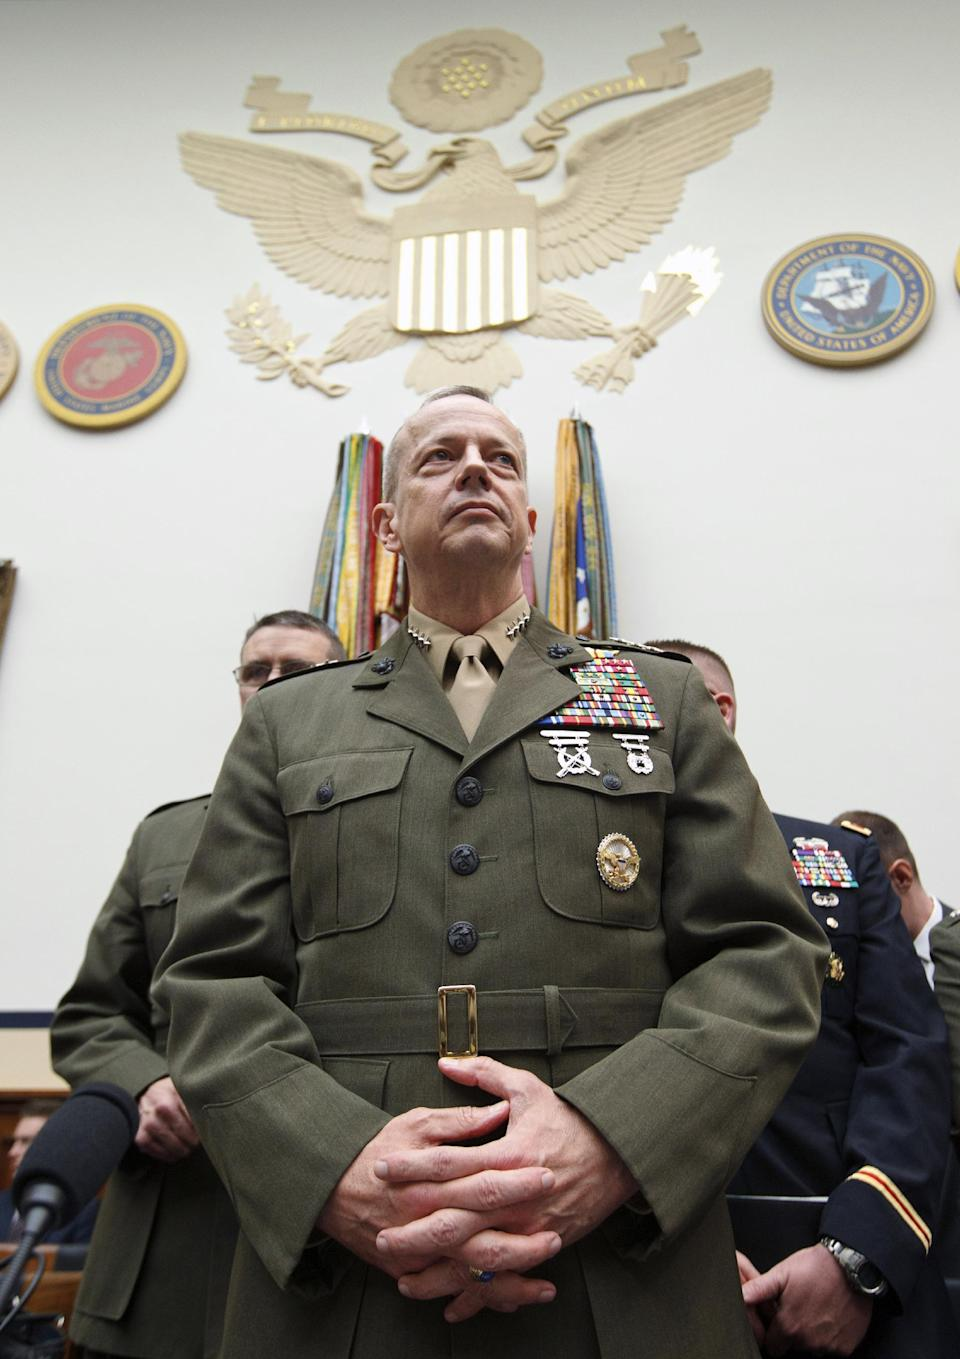 Marine Gen. John Allen, the top U.S. commander in Afghanistan arrives on Capitol Hill in Washington, Tuesday, March 20, 2012, to testify before the House Armed Services Committee hearing on Afghanistan. (AP Photo/J. Scott Applewhite)